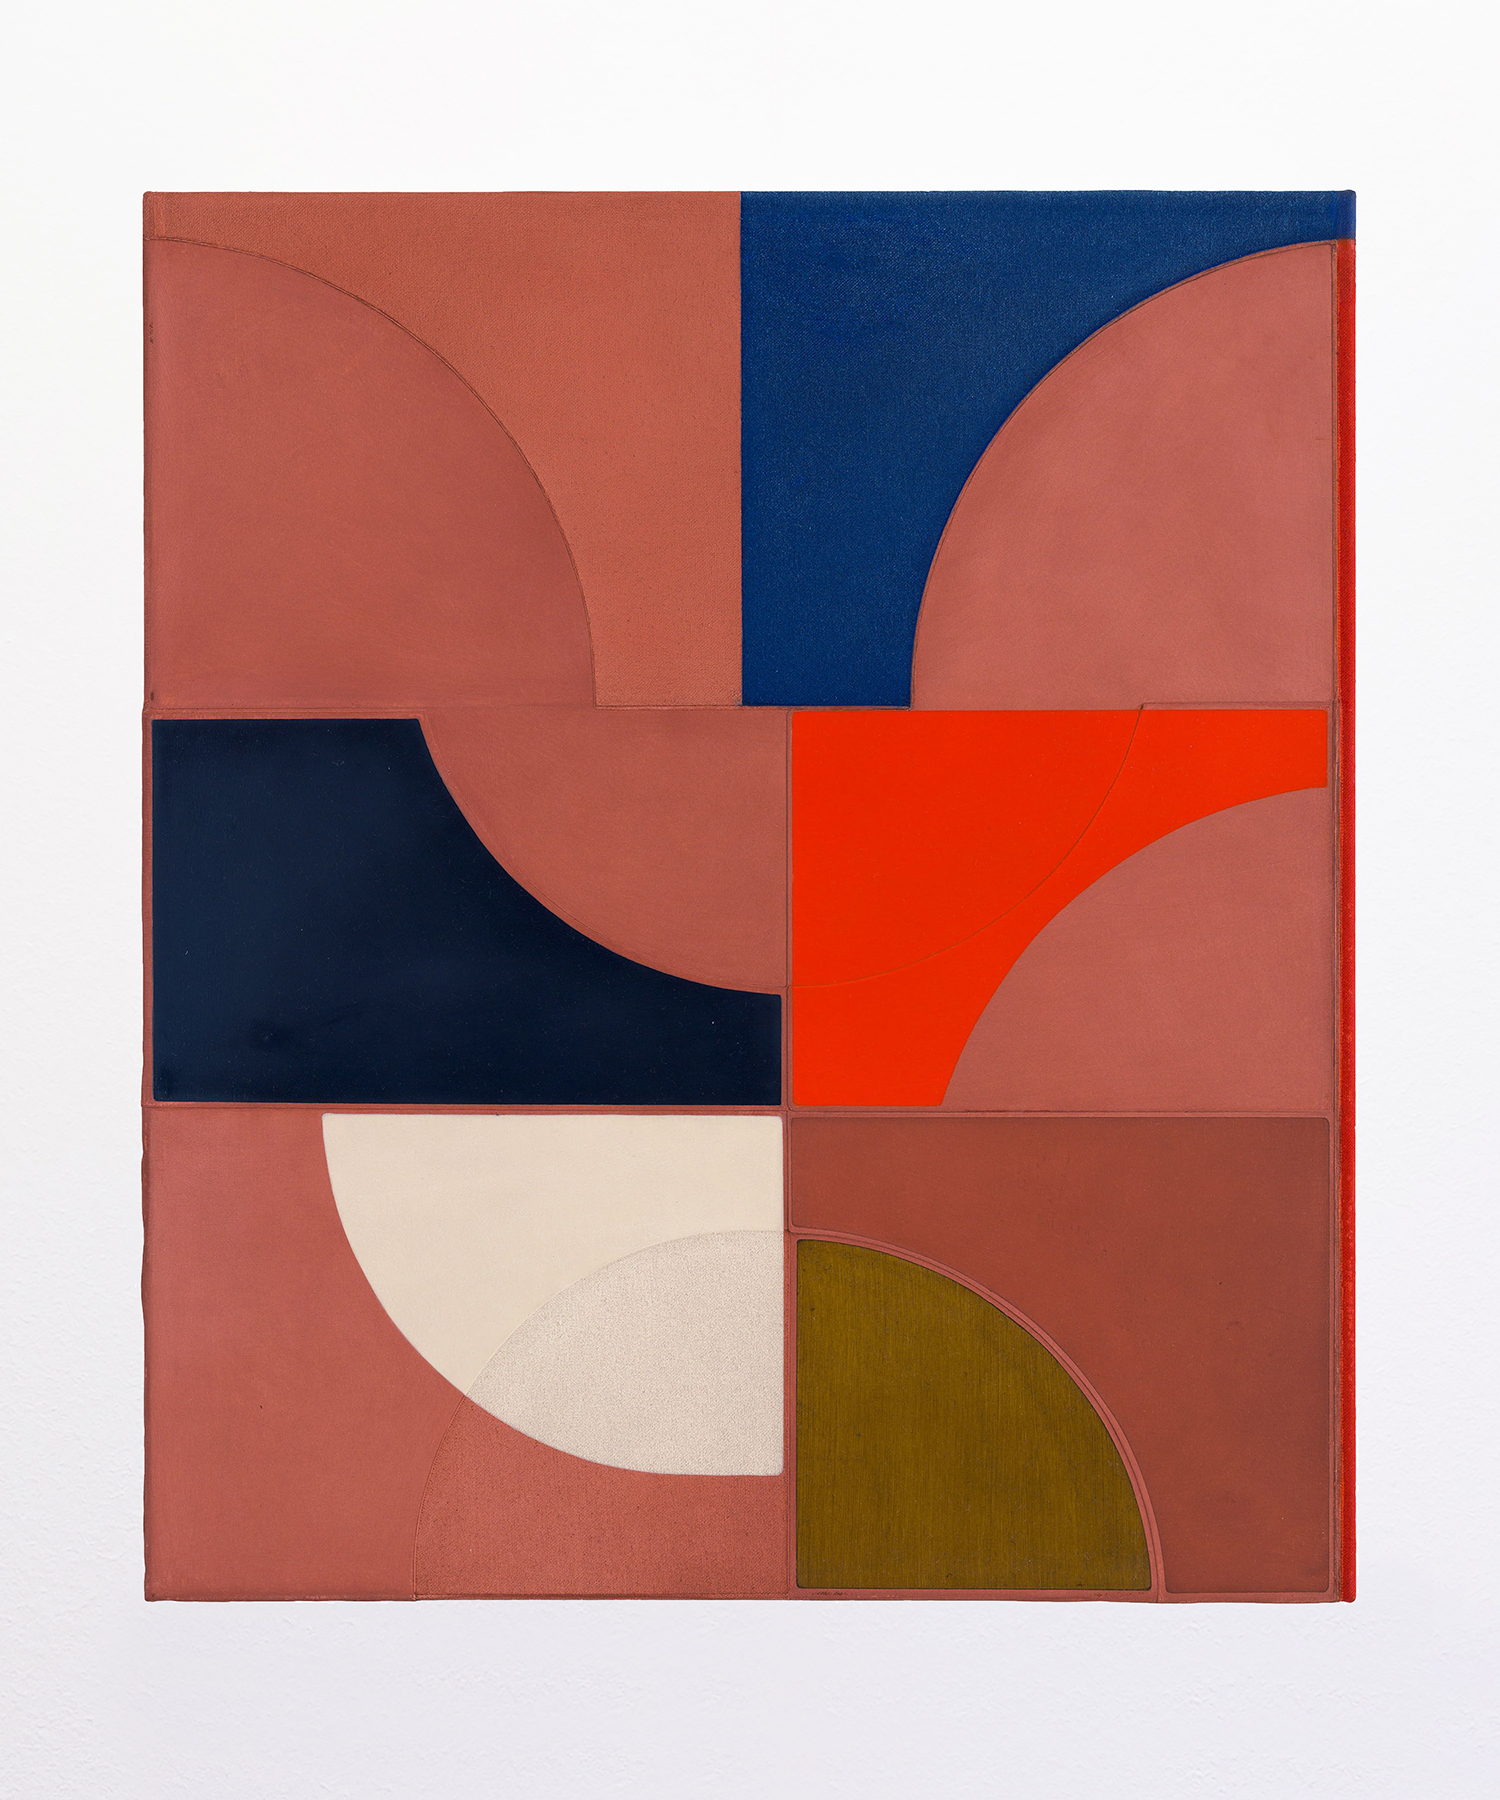 MARIANNE BOESKY GALLERY | NEW YORK + ASPEN SVENJA DEININGER   Untitled , 2019 Oil on canvas 27.5 in x 23.62 in / 70 cm x 60 cm